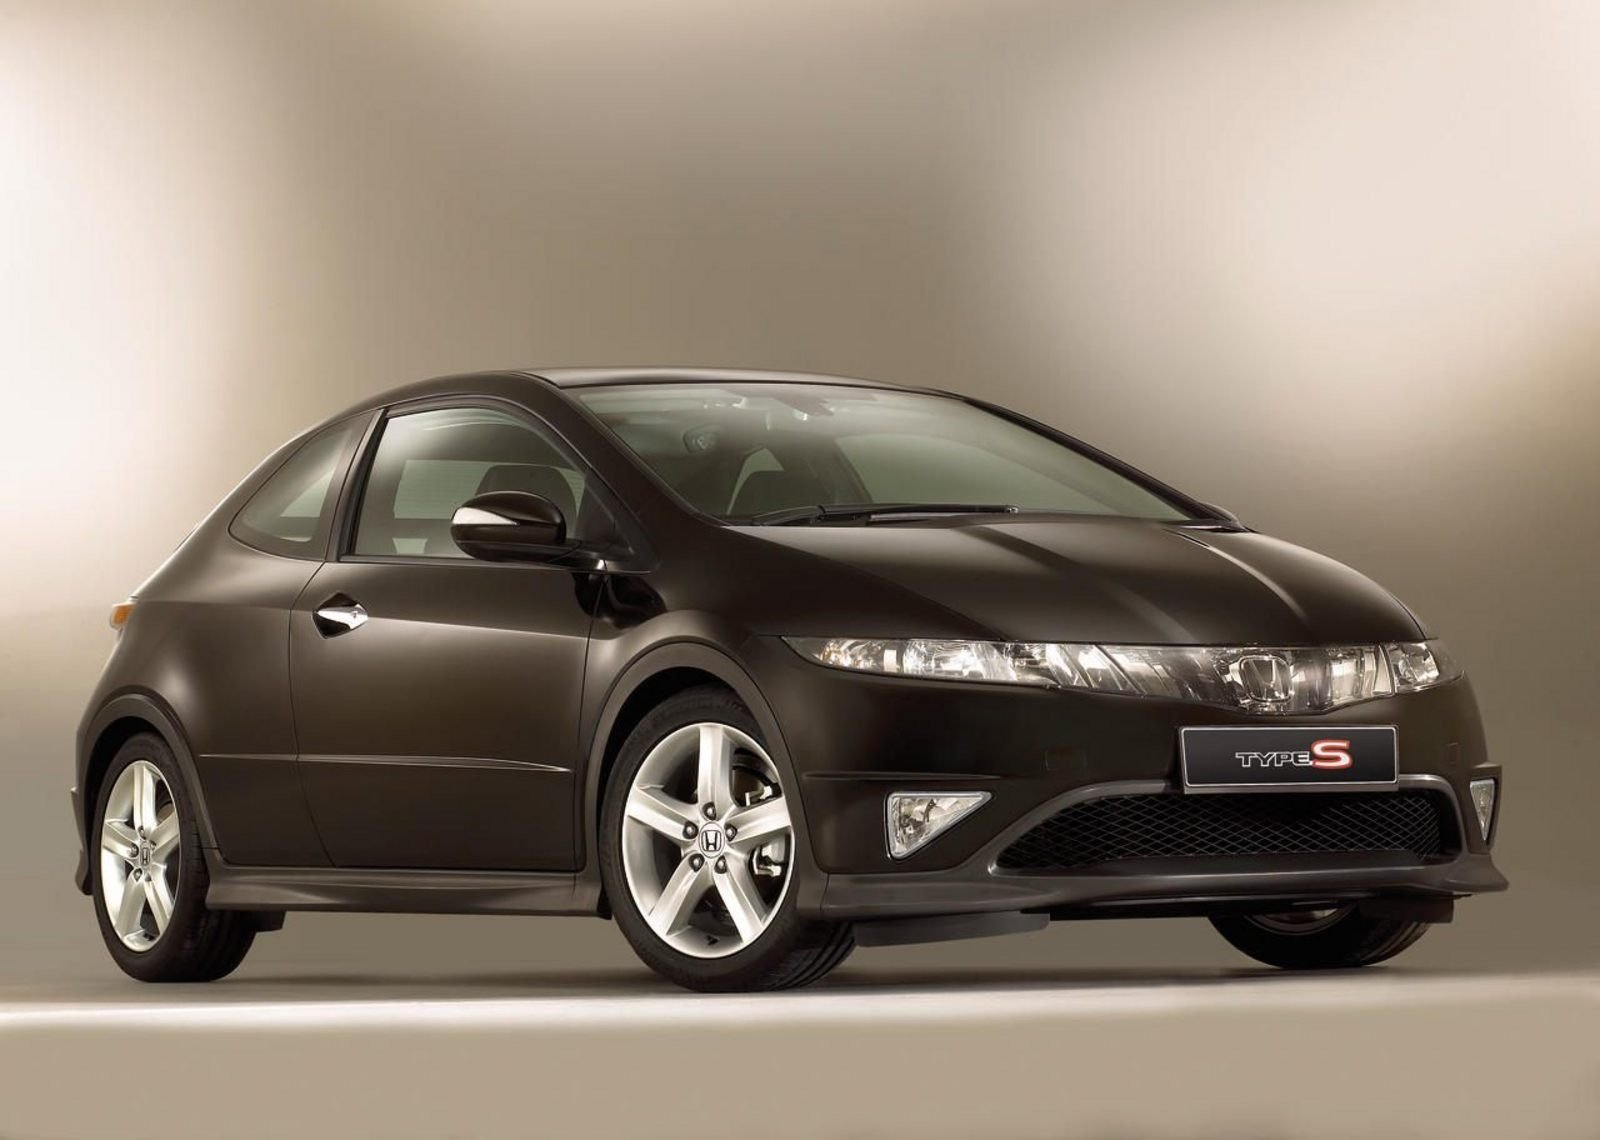 2007 honda civic type s review top speed. Black Bedroom Furniture Sets. Home Design Ideas